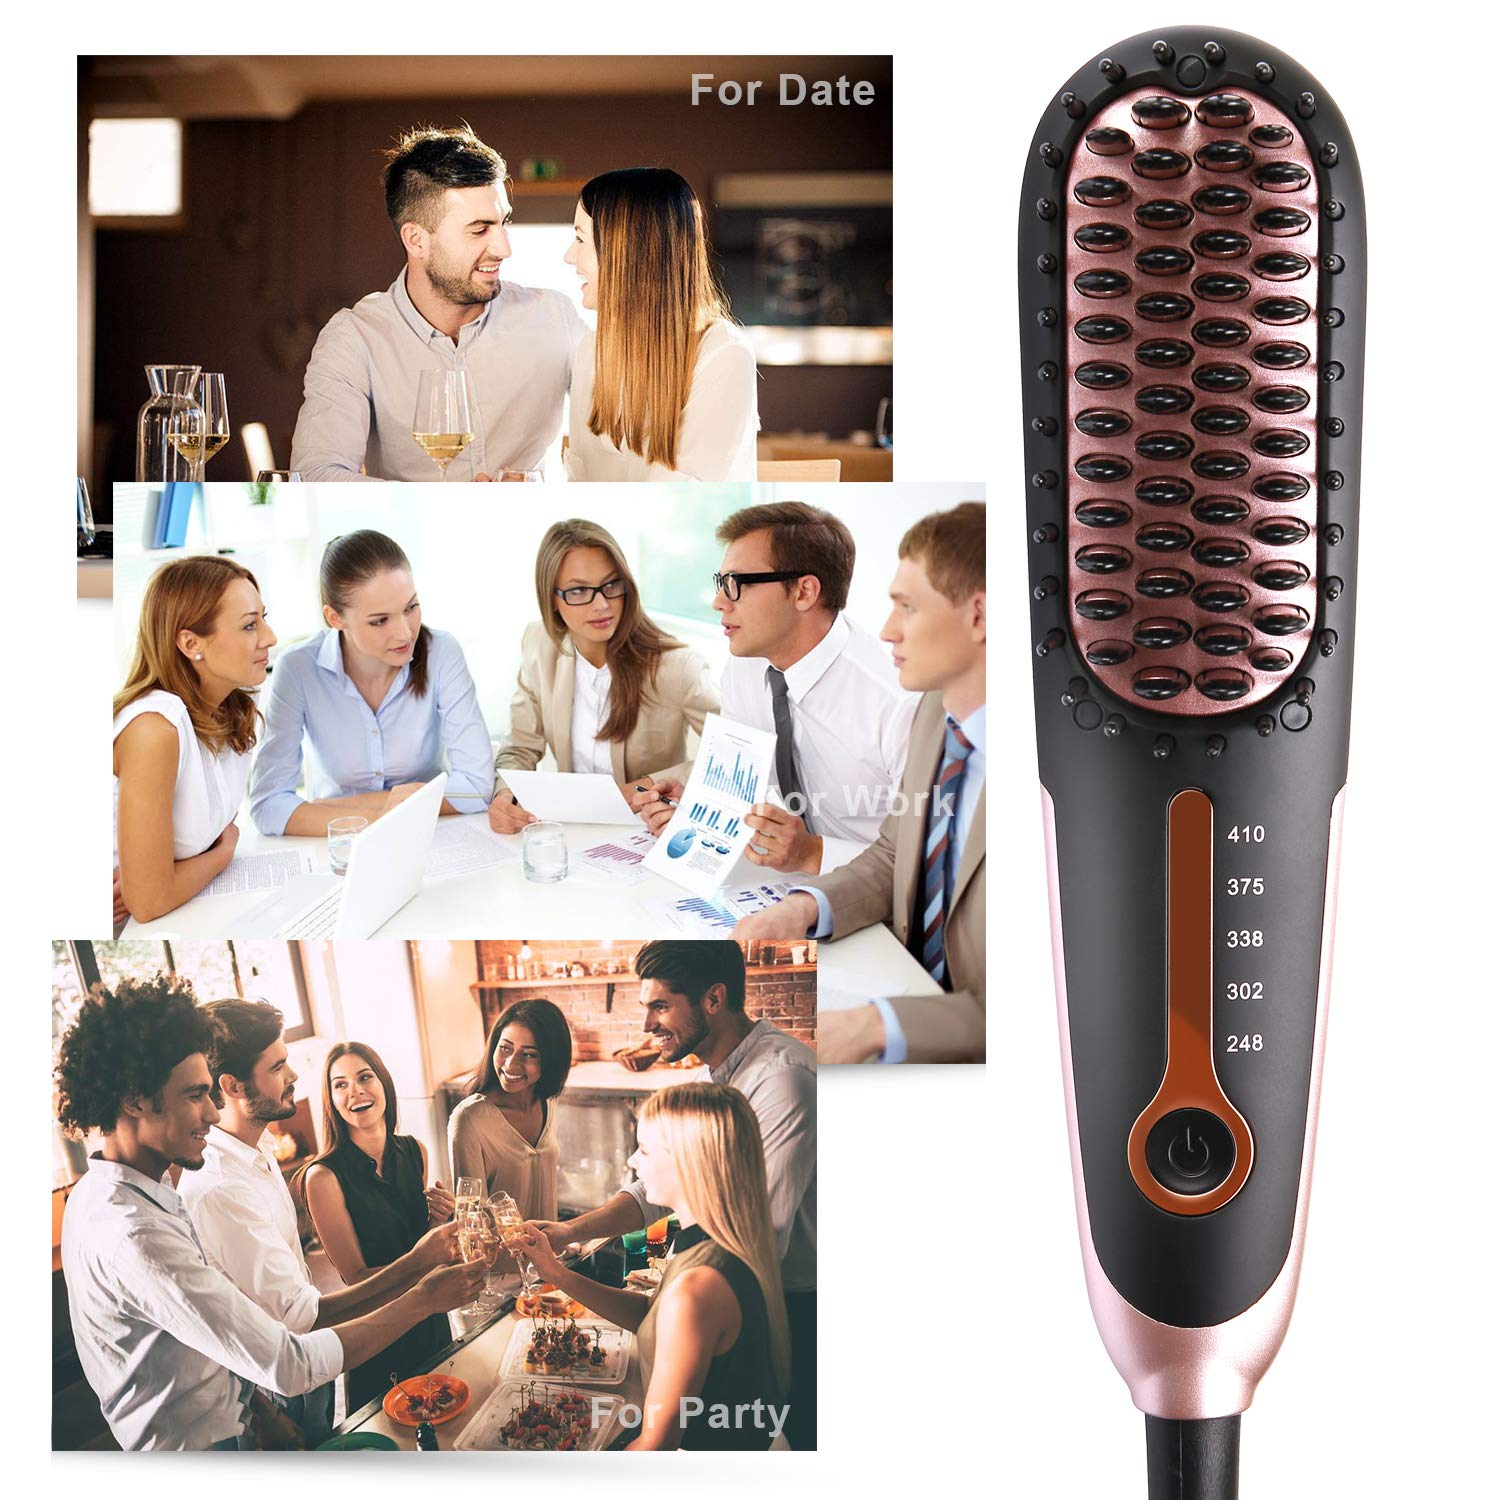 Straightening Brush 3.0, Buture Mini Hair Straightener Brush Ceramic Heating Ionic Hair Straightening Brush for Travel with Anti-scald MCH 110-240V Auto Shut Off Temperature Lock Black and Pink by BuTure (Image #8)